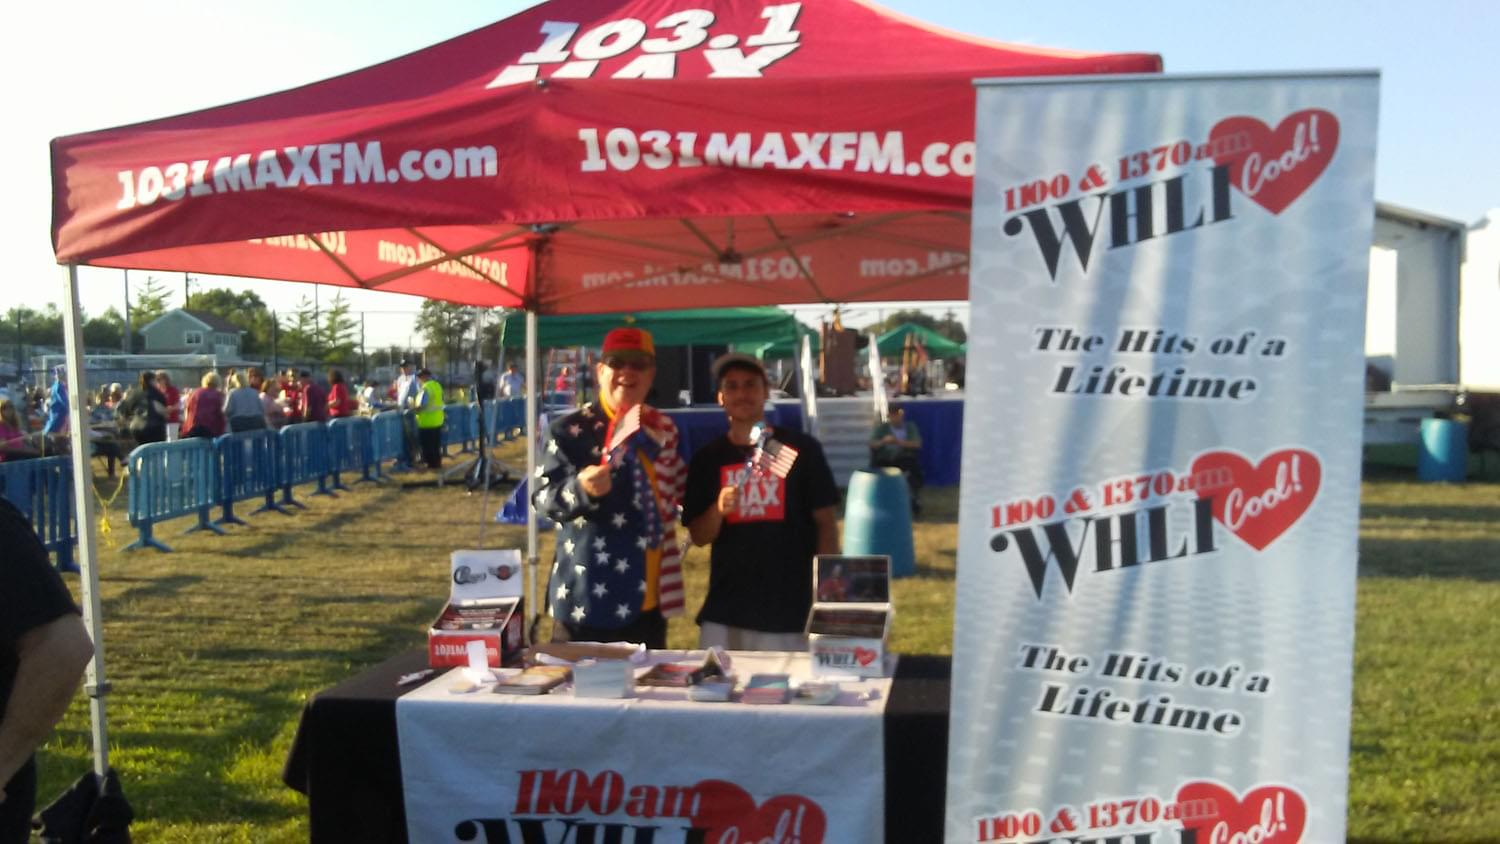 1100 WHLI AM at the Summer Concert Series